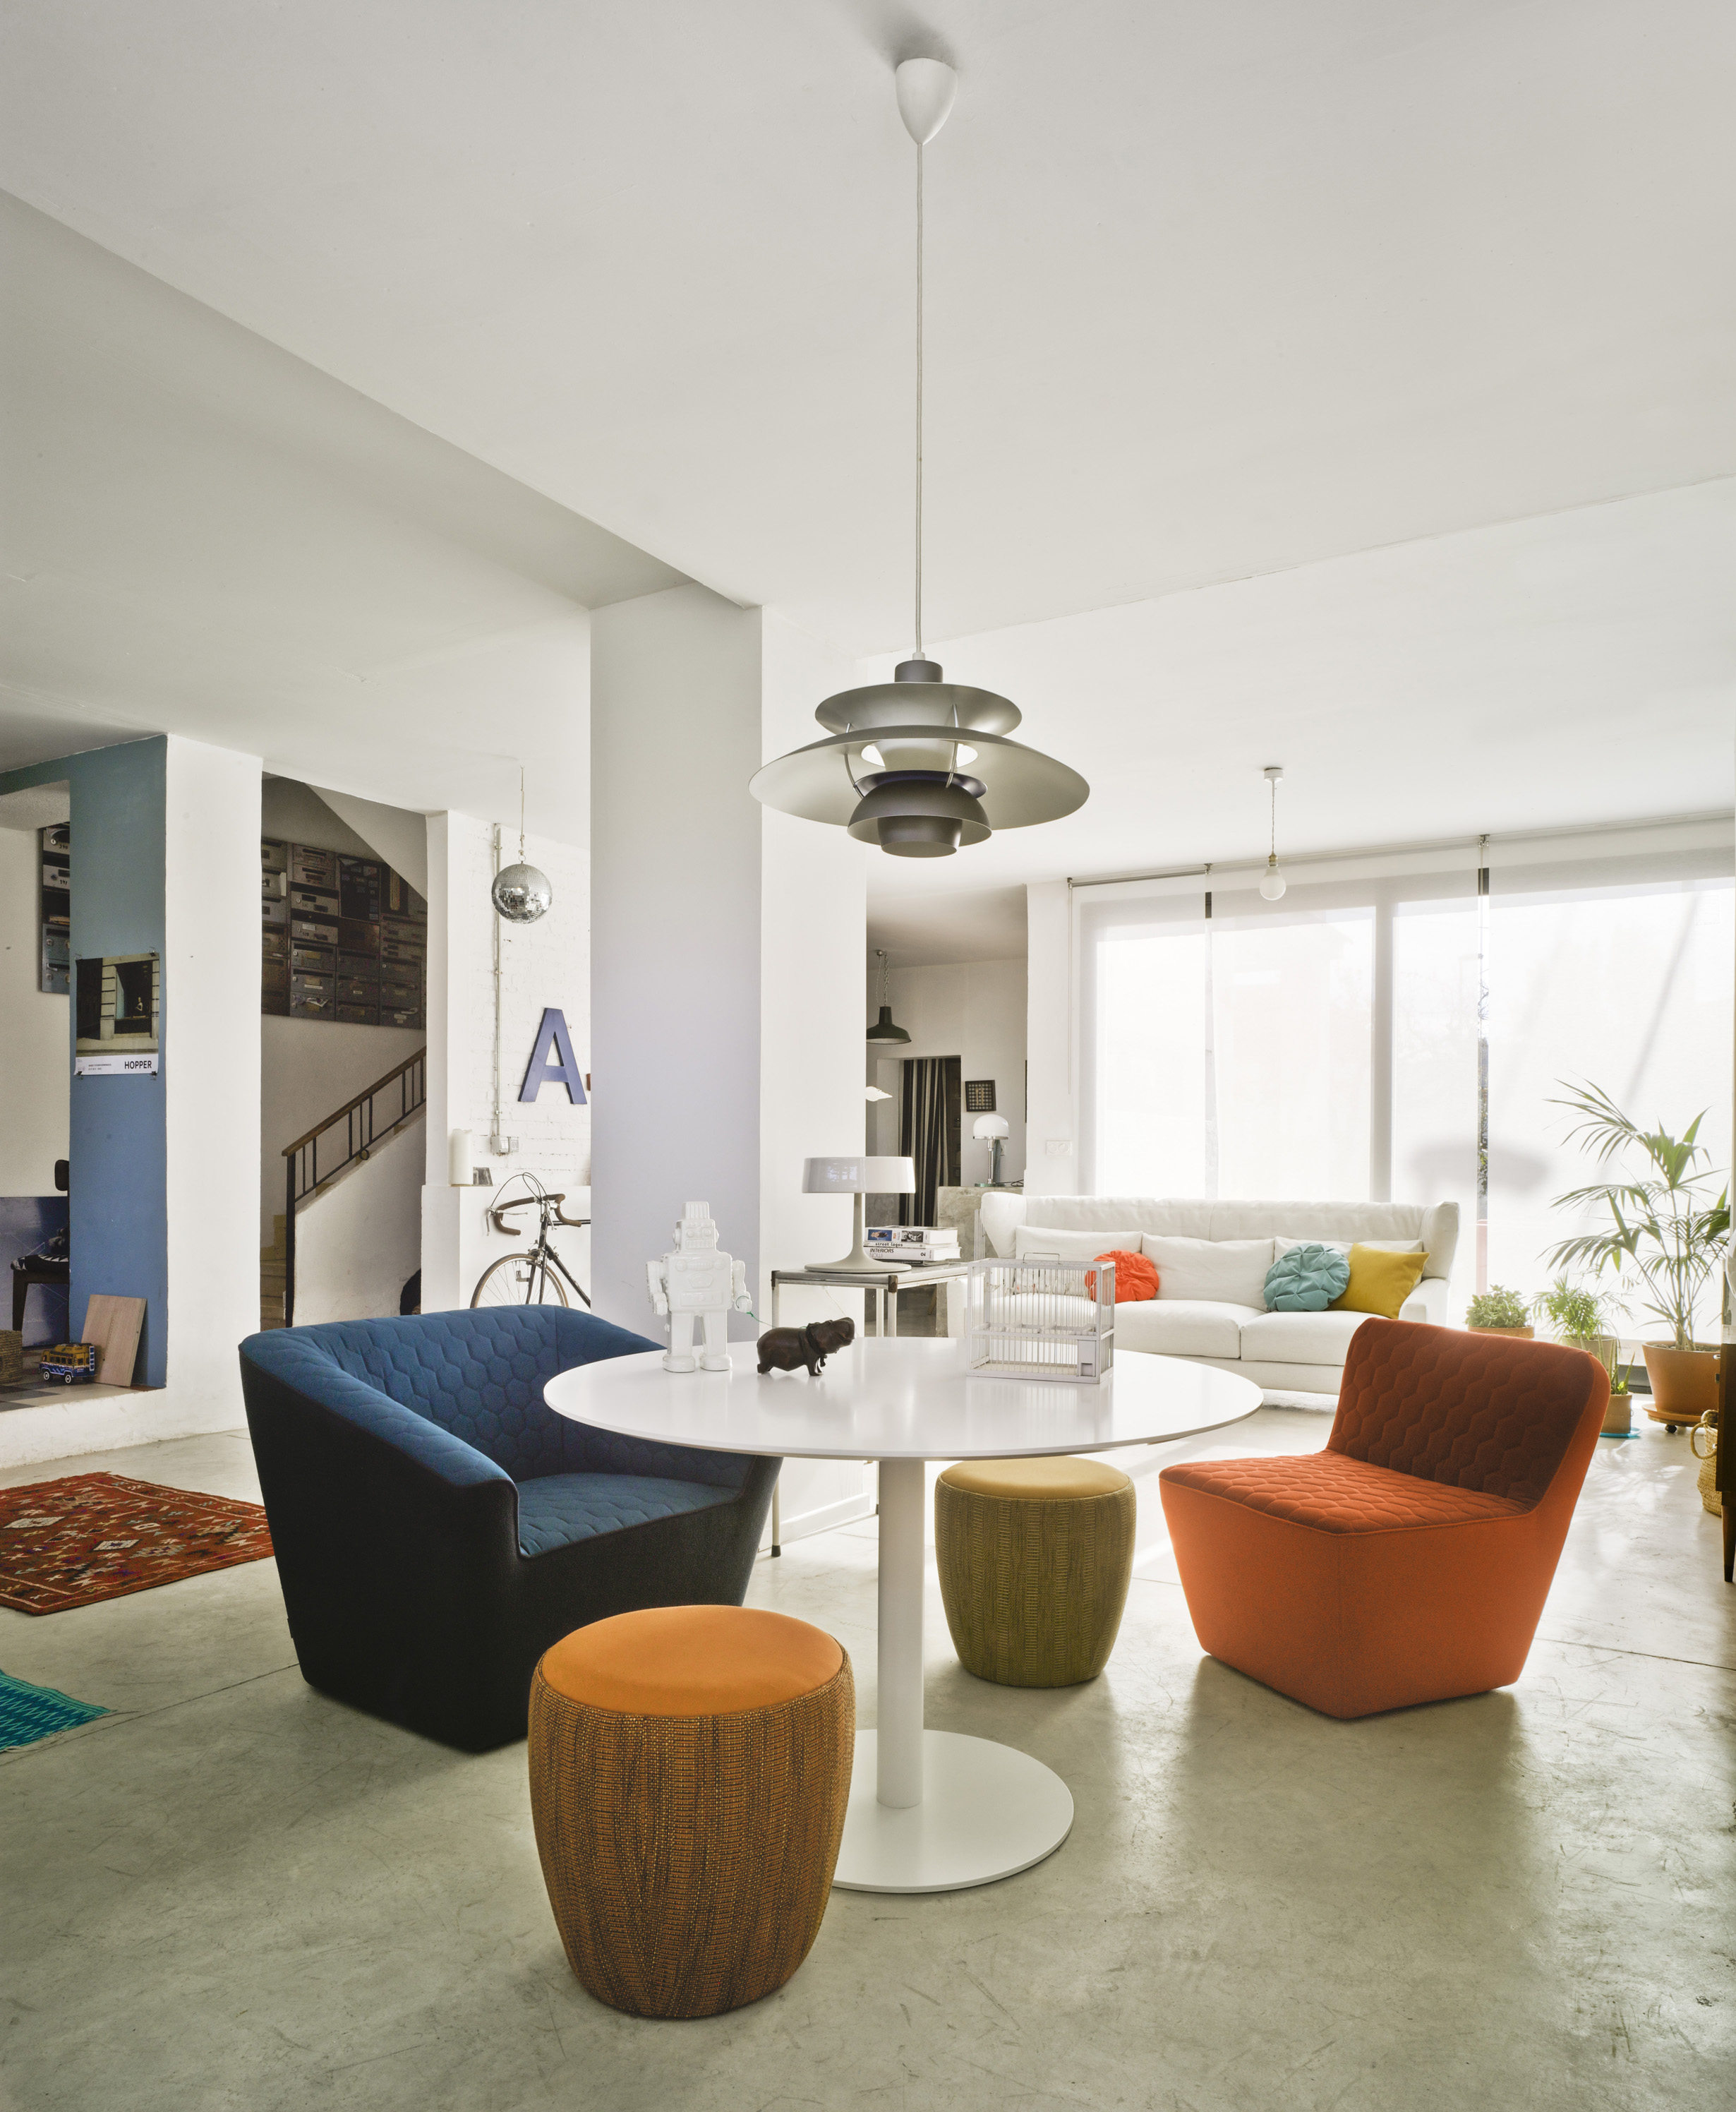 Tea Armchair with Chat stools from Sancal